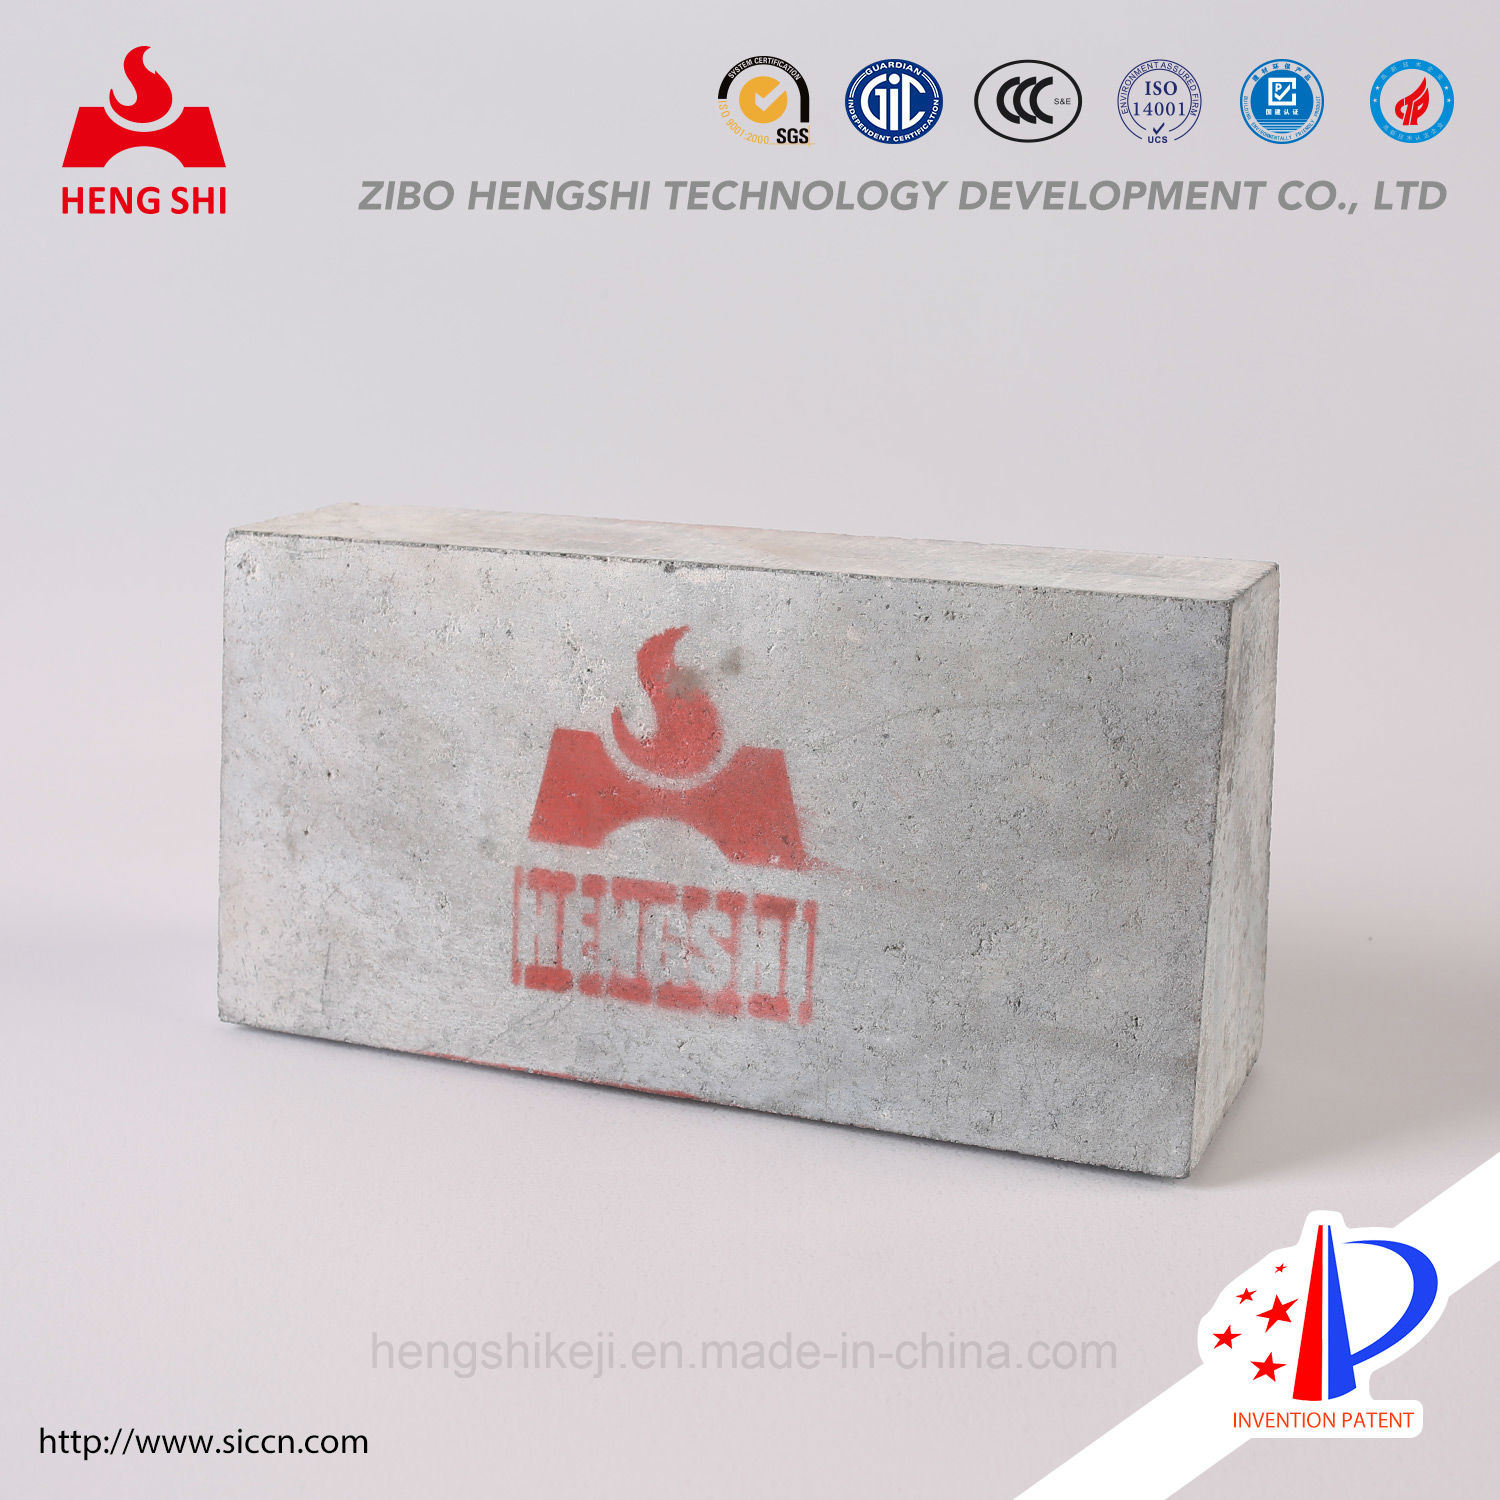 LG-34 Silicon Nitride Bonded Silicon Carbide Brick